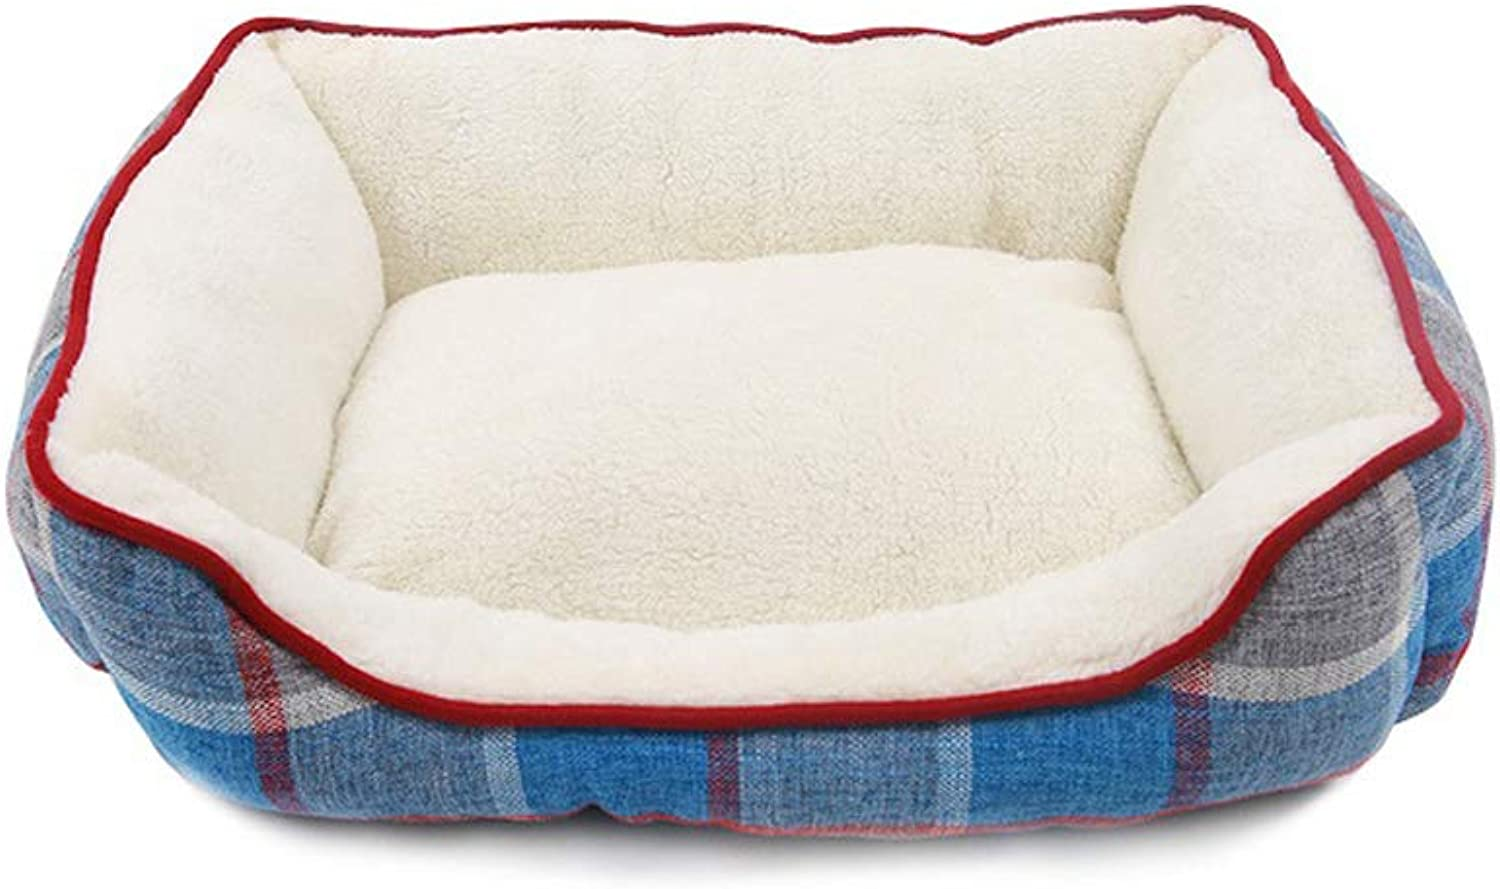 Kennel Pet Puppy Bed Sleeping Pad, Super Soft Padded Warm Cat Cat Comfort Pad, Small Or Medium Pet Supplies (Size   L 65  55  20cm)